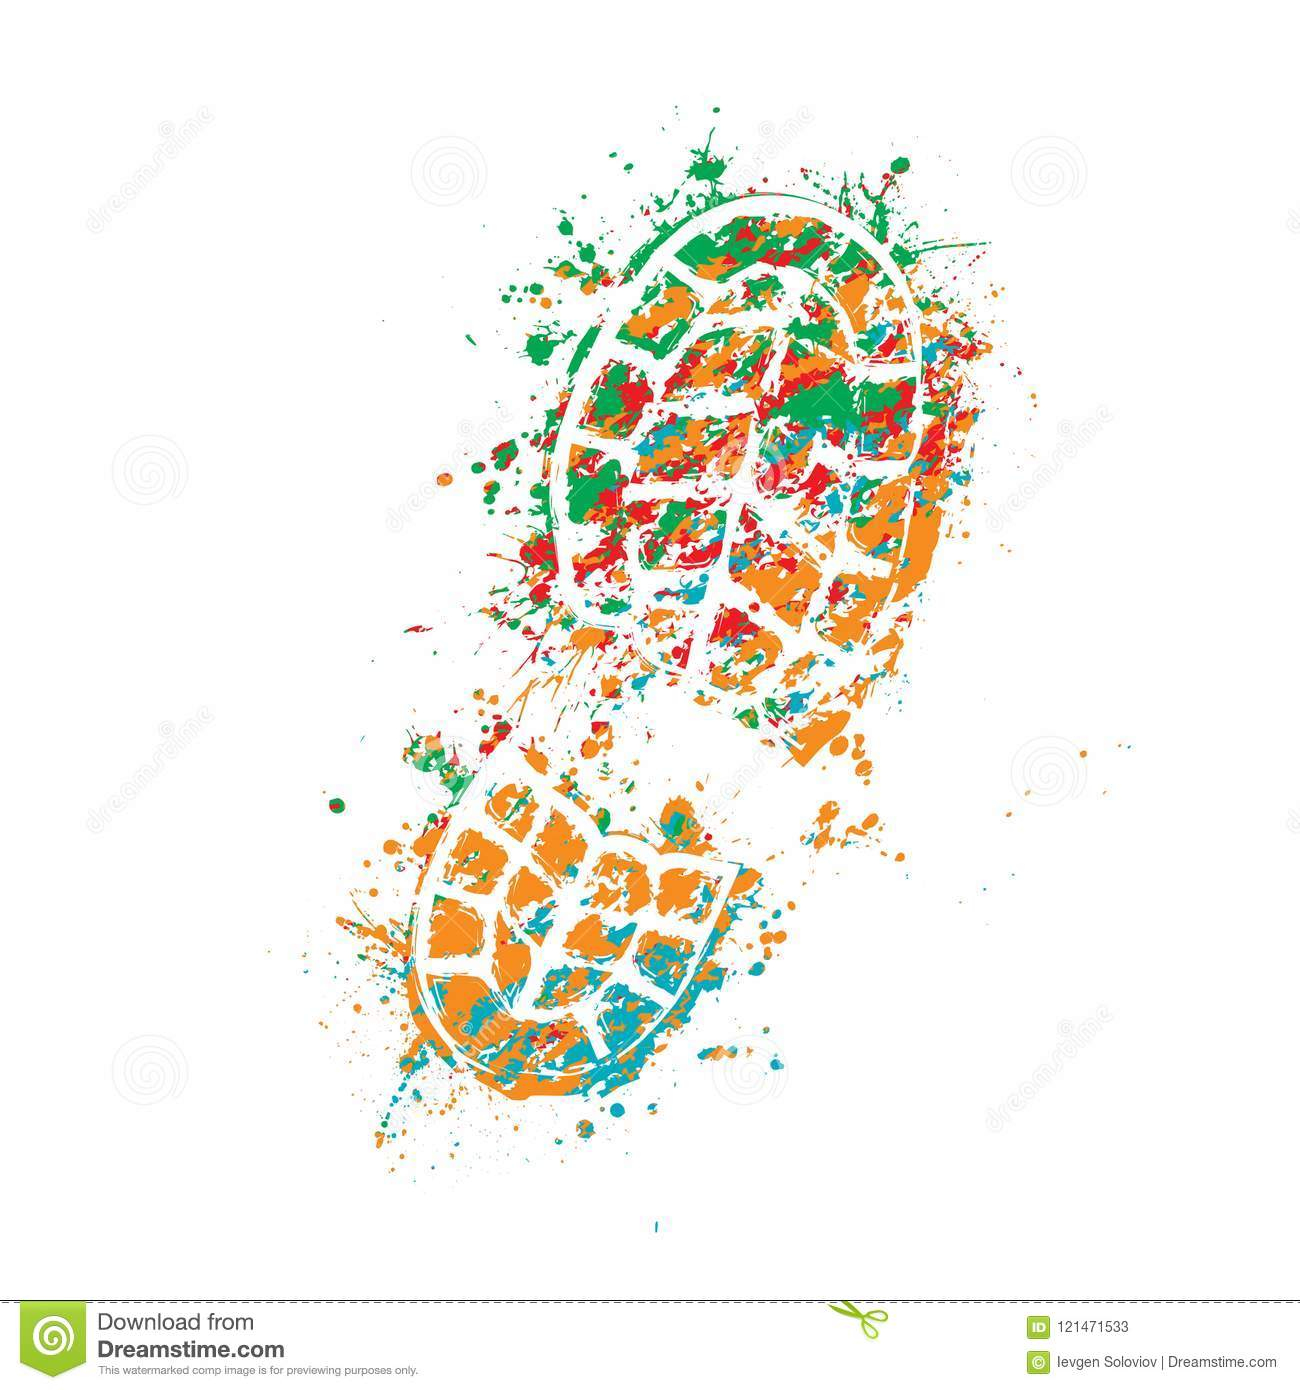 768317b68 Grunge color silhouette of shoe print on white background. More similar  stock illustrations